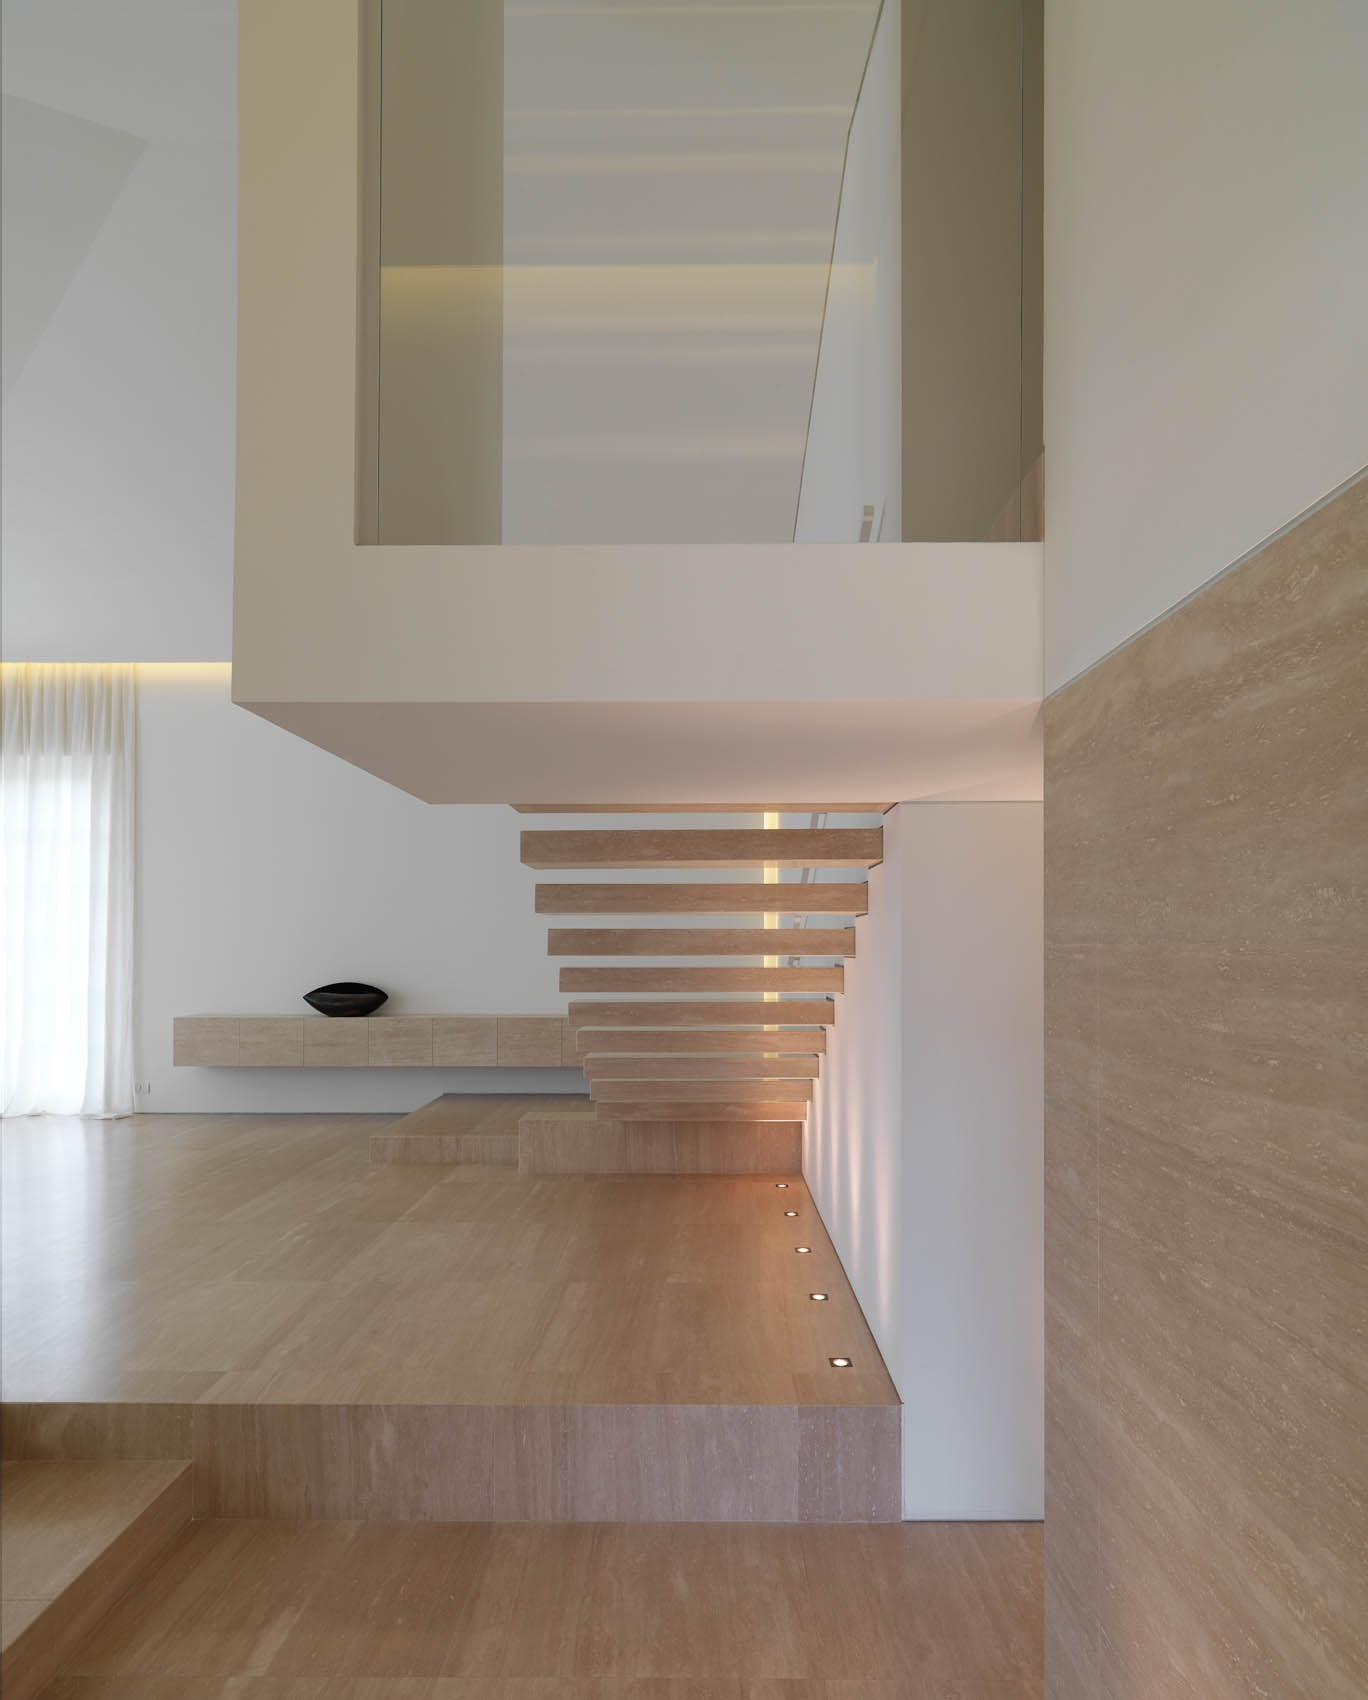 33 Staircase Designs Enriching Modern Interiors With: Soldati House Interior By Victor Vasilev